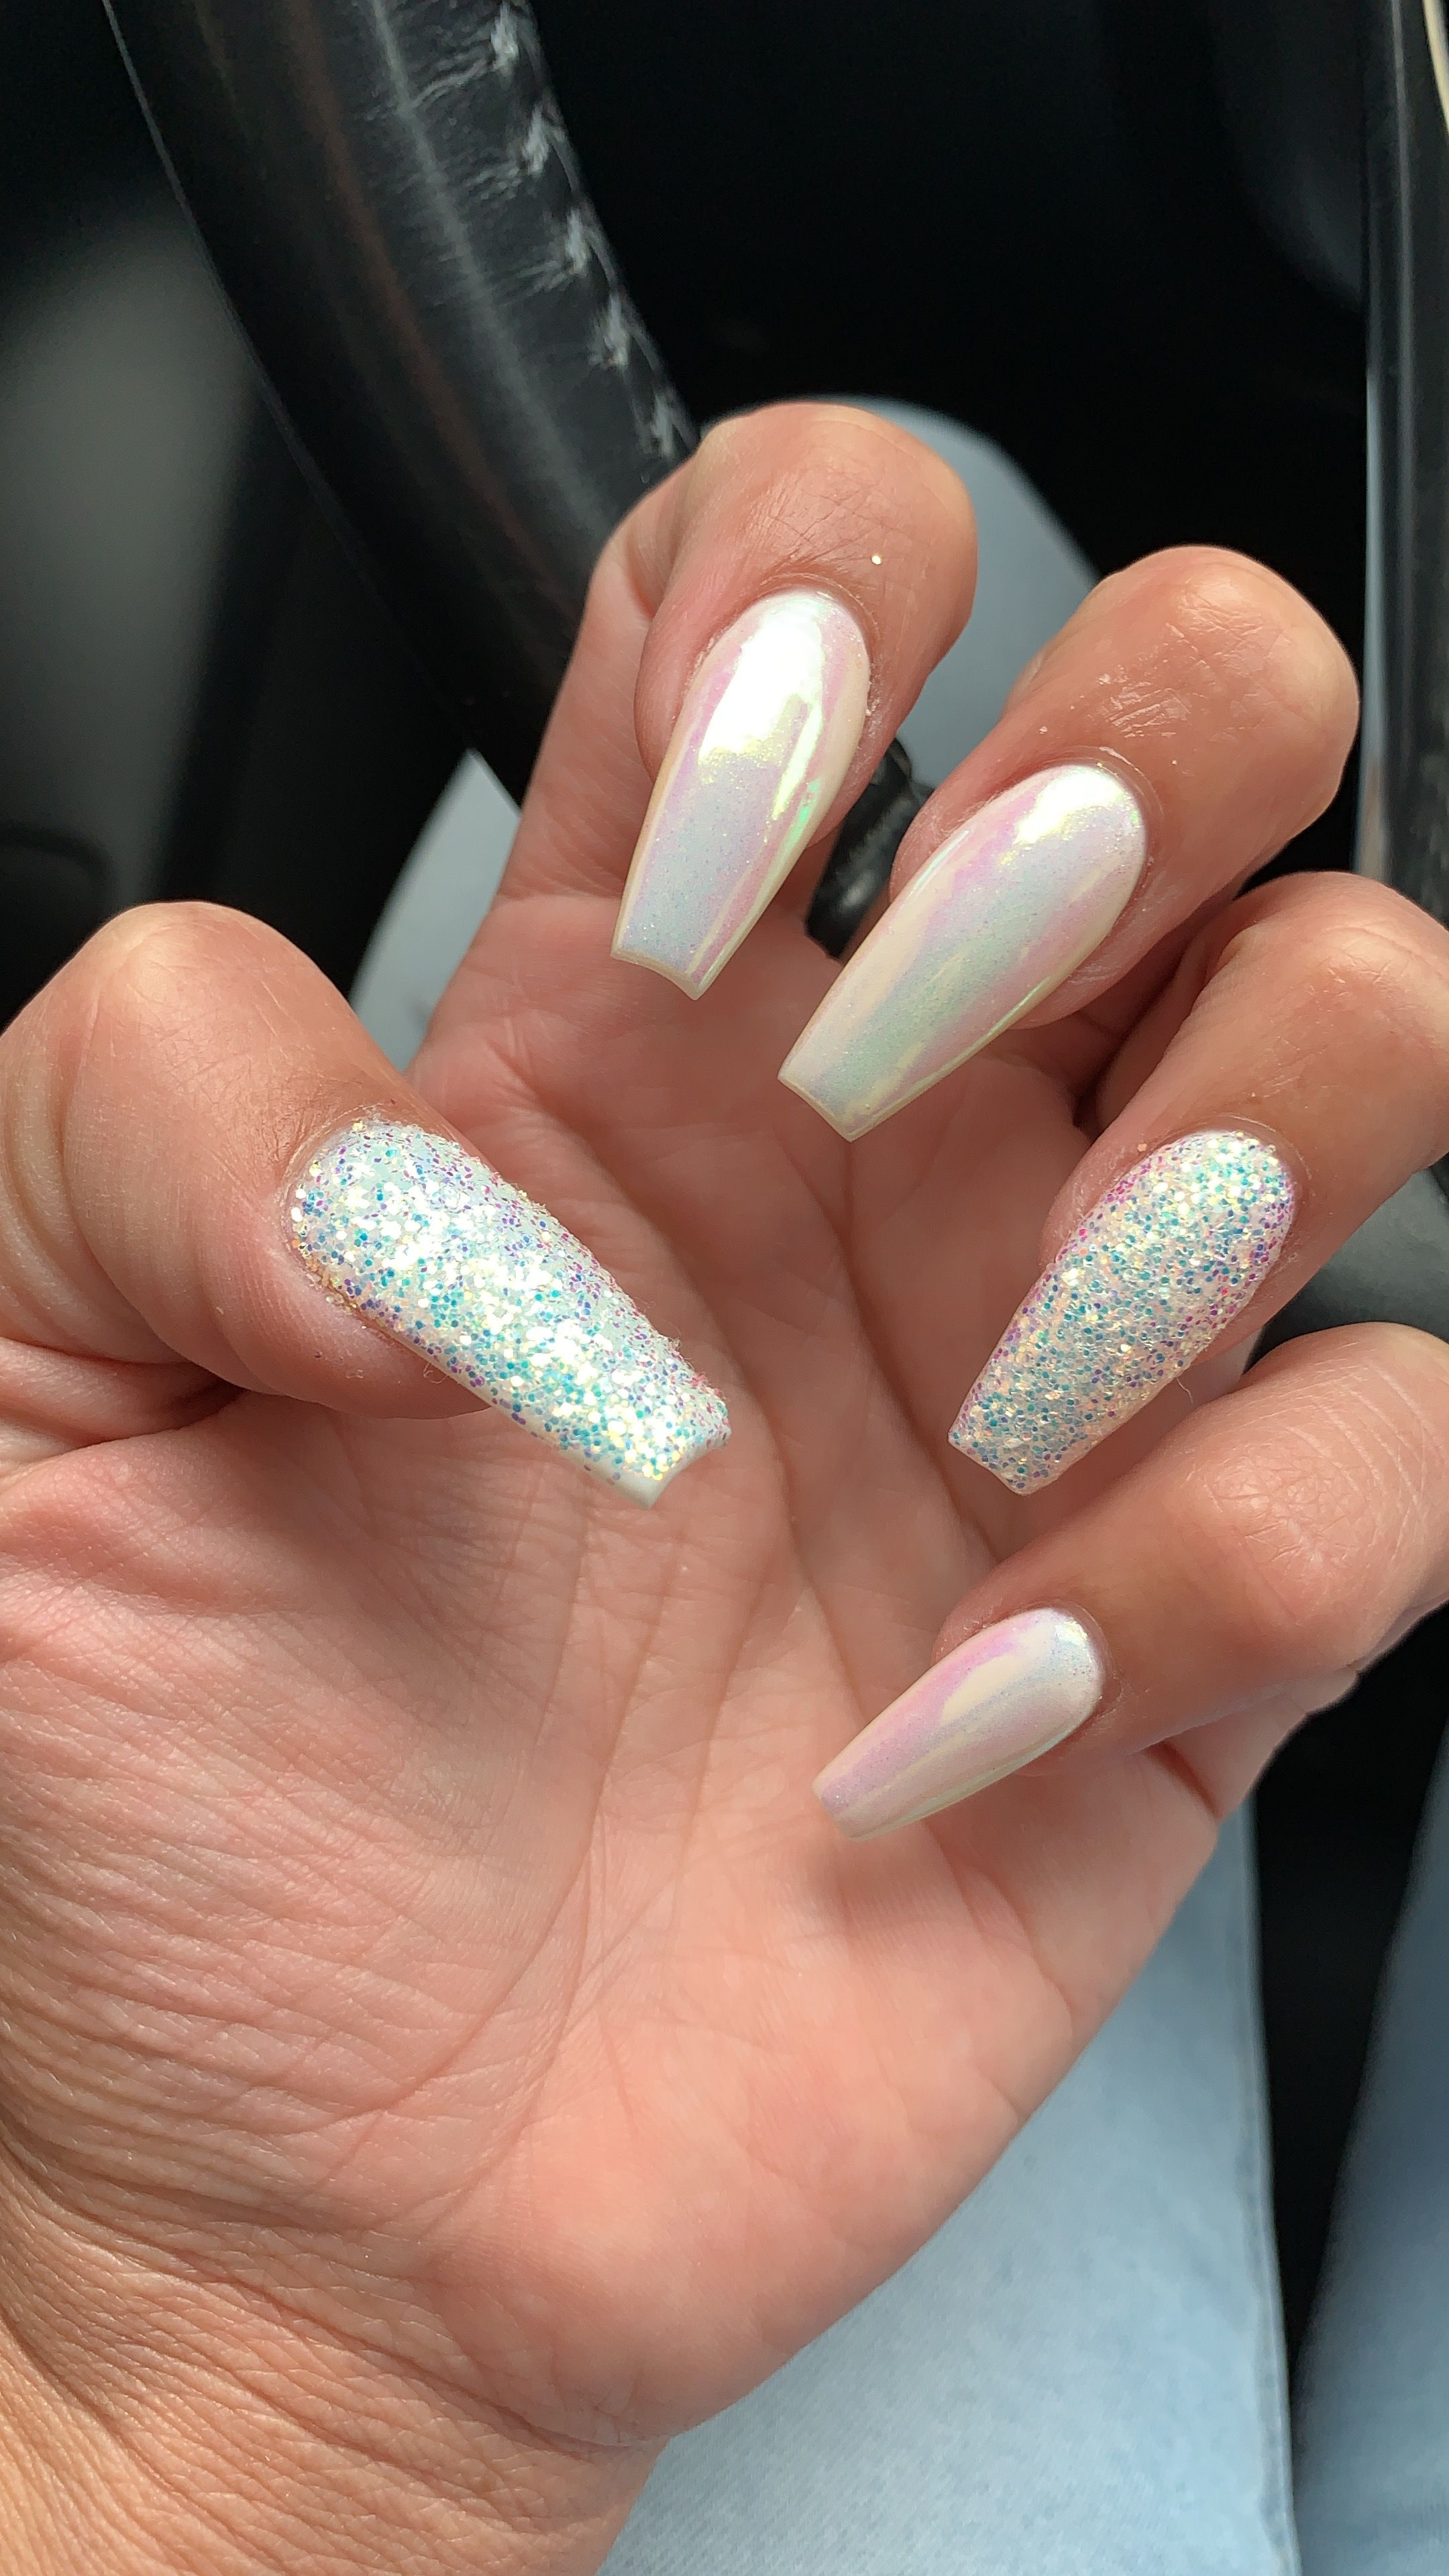 Pearly White Shellac White Gel With Chrome Top Manicure Nail Designs White Chrome Nails Gel Nails